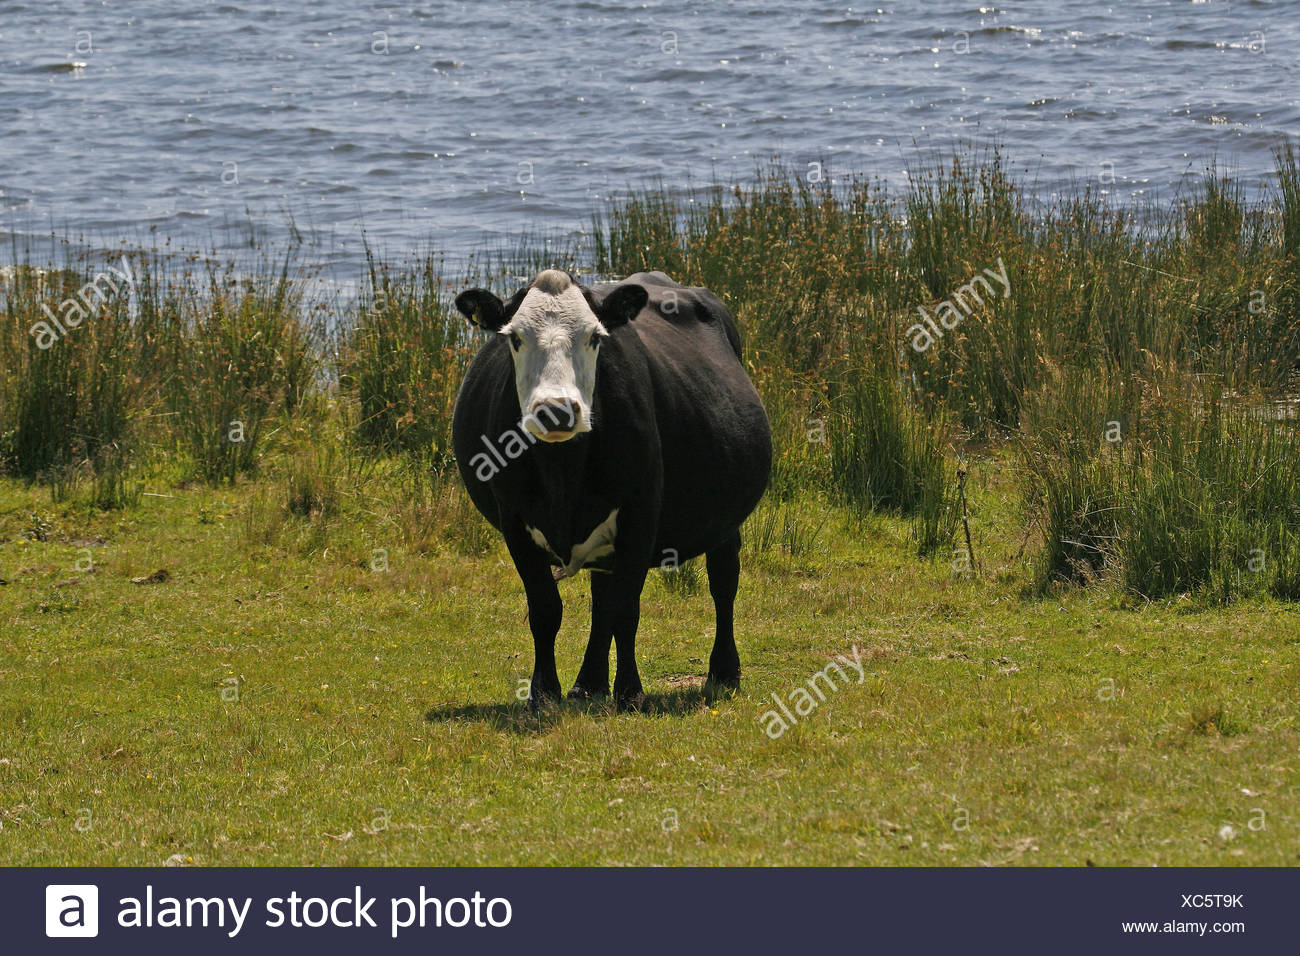 Cow on Bodmin Moor, Colli Ford Lake, Cornwall, southwest England - Black cow with white face at the Colli Ford lake, Cornwall, E - Stock Image